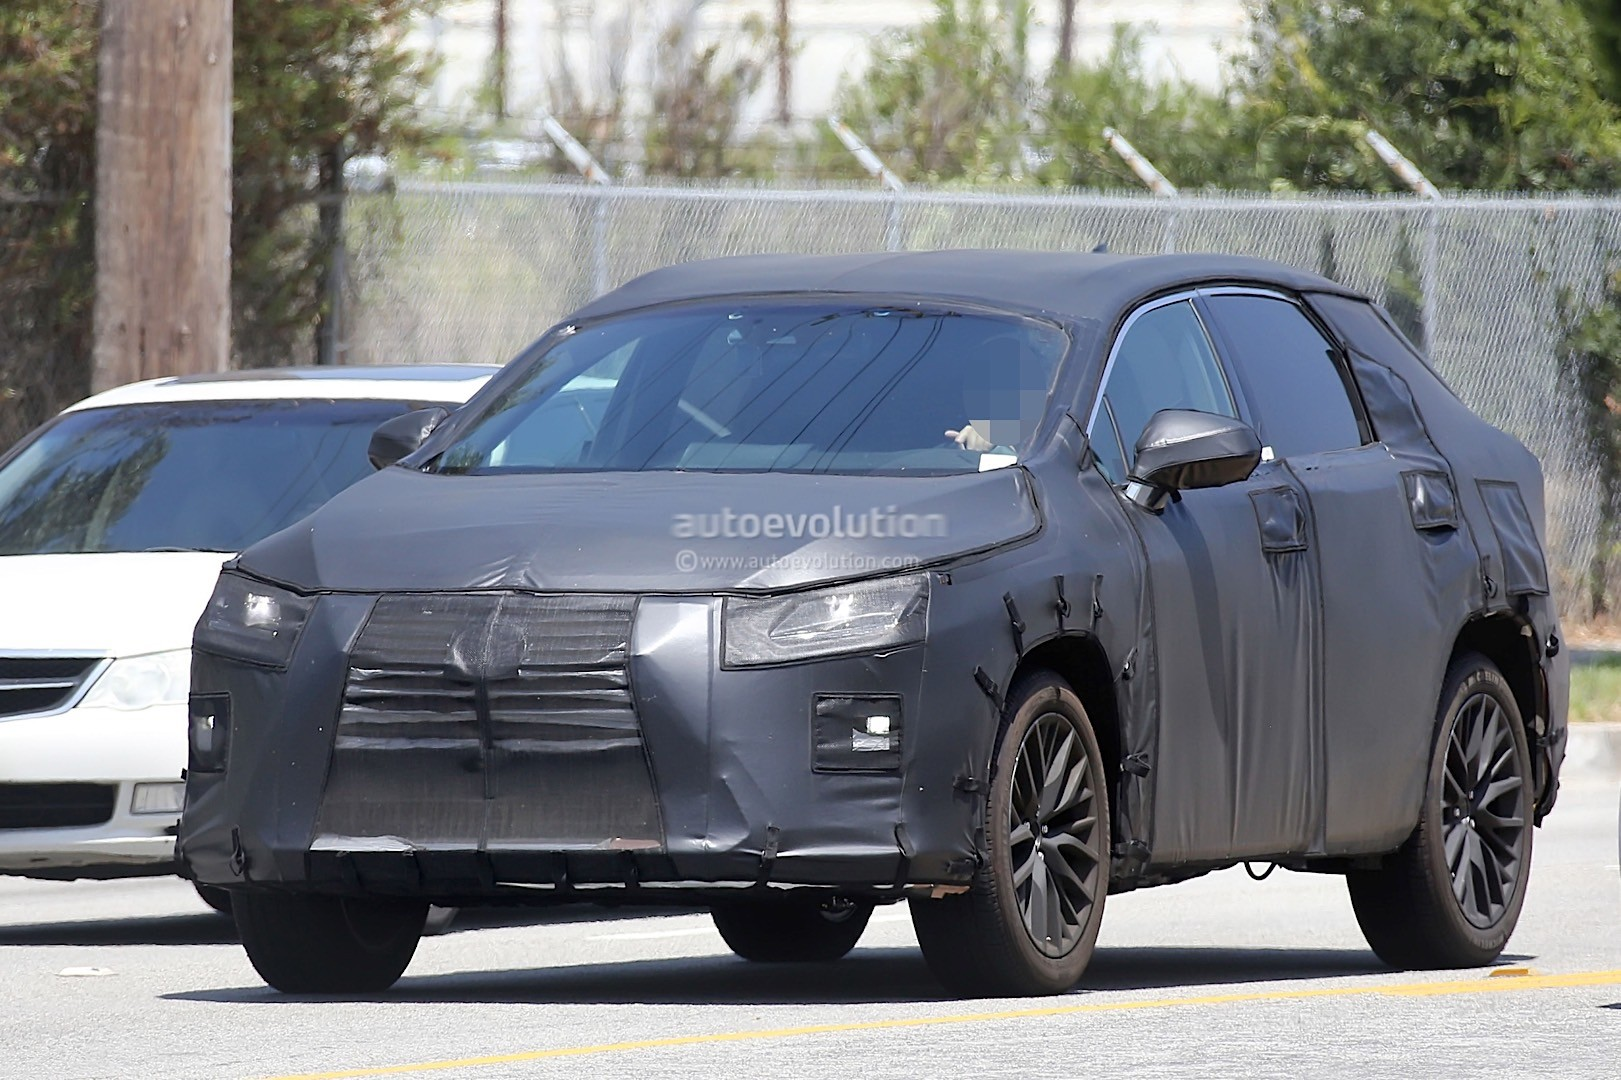 7 Seater Suv 2017 >> 2016 Lexus RX Seven-Seater Spied, Looks Like Lexus Listen ...